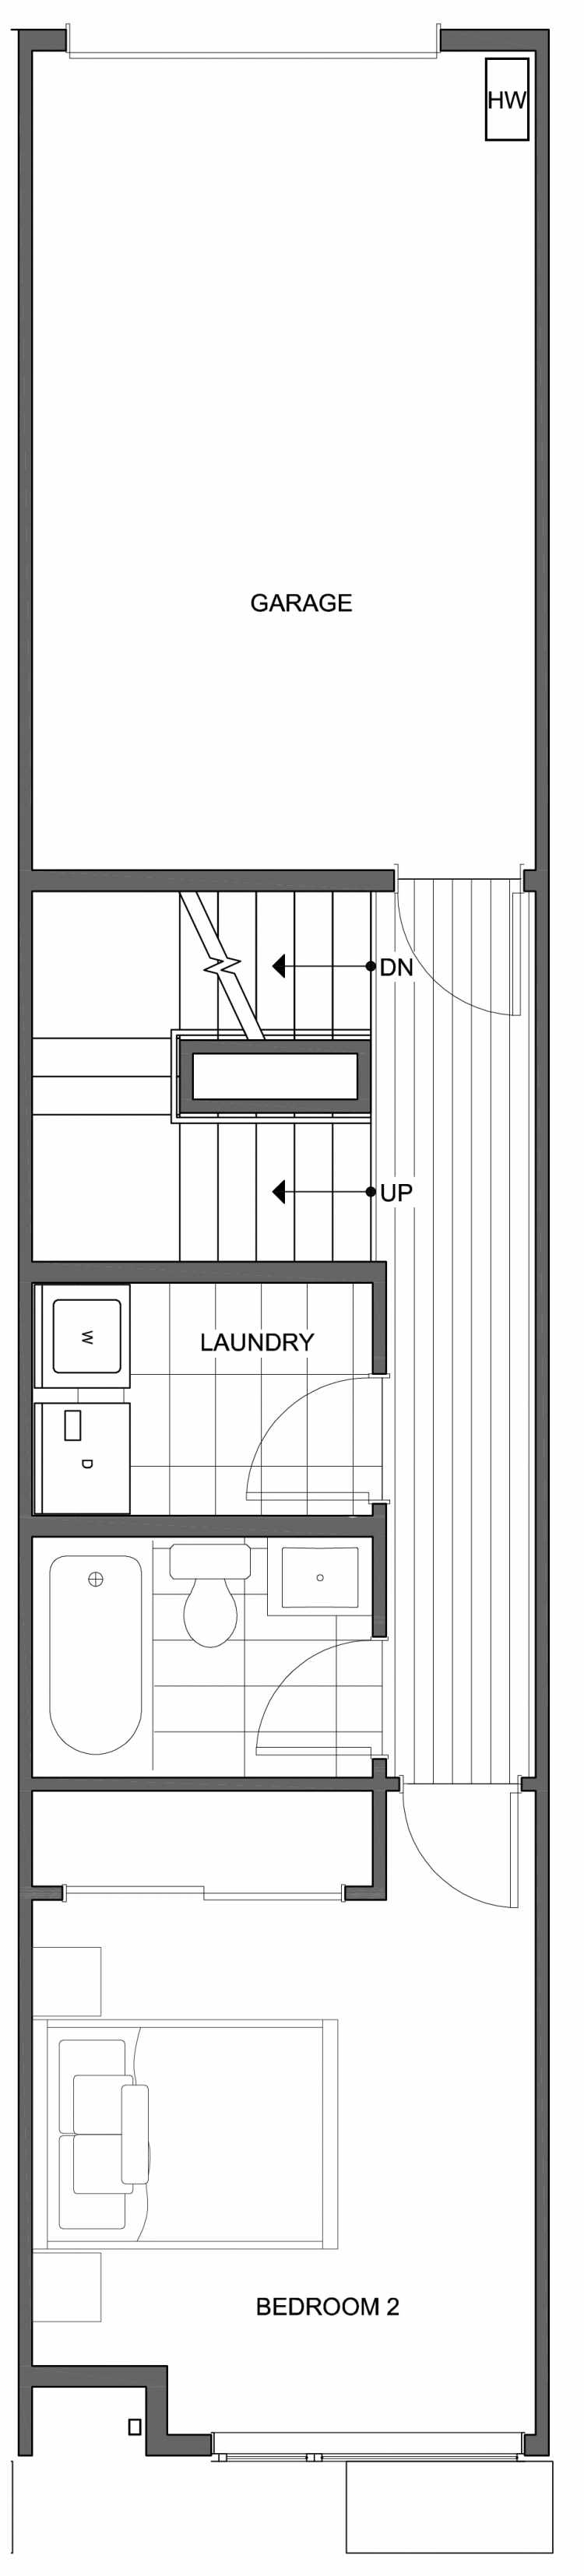 Second Floor Plan of 806C N 46th St, One of the Nino 15 East Townhomes by Isola Homes